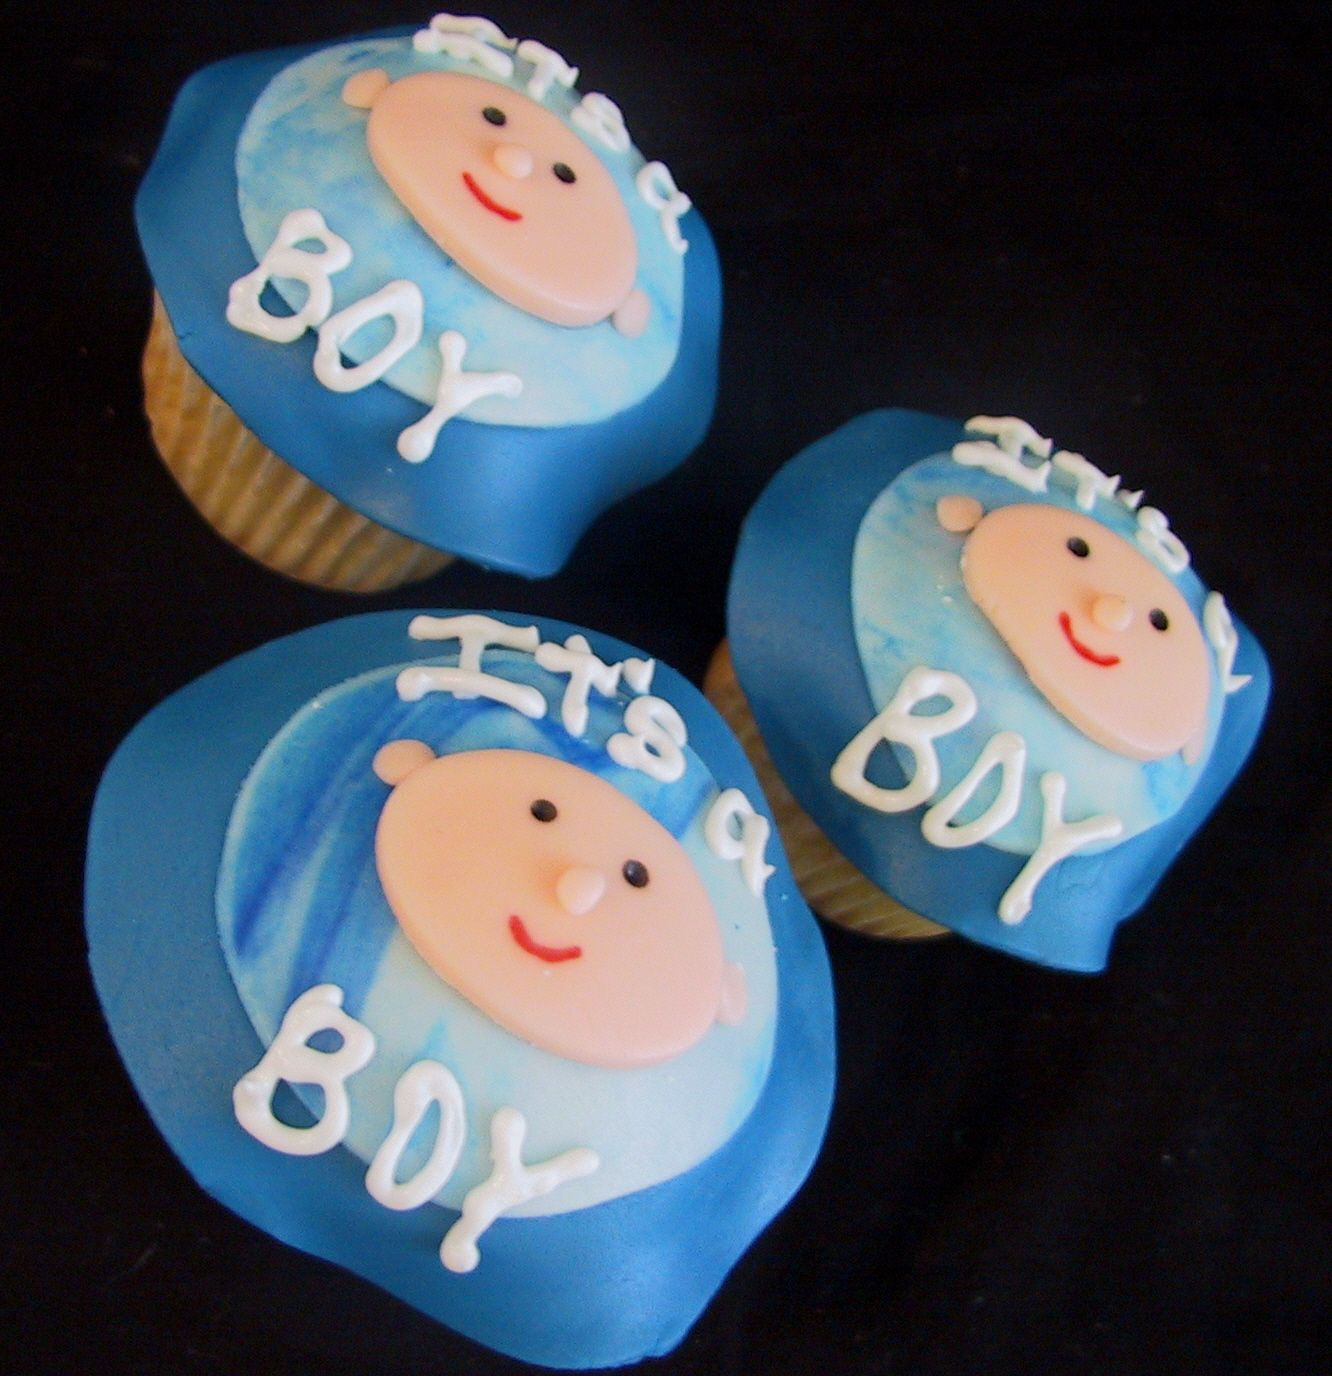 Find This Pin And More On Baby Boy Belabes Baby Shower By Ttucker5380.